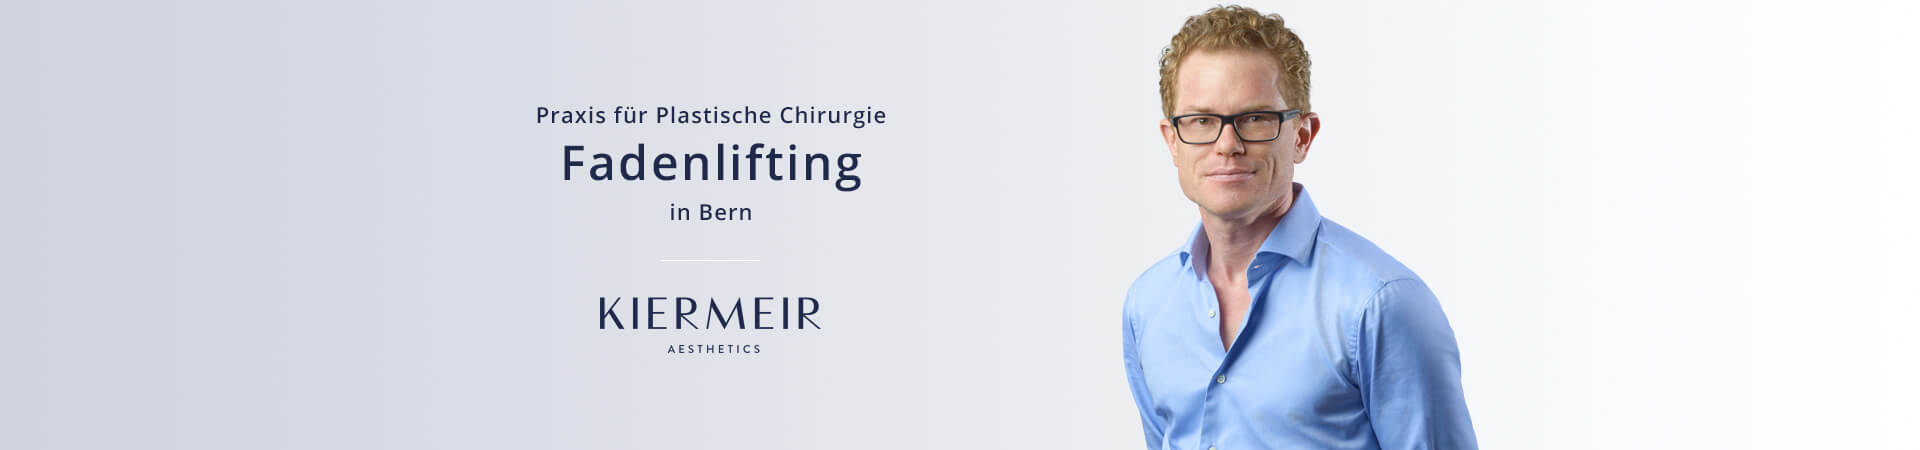 Fadenlifting in Bern - Dr. David Kiermeir